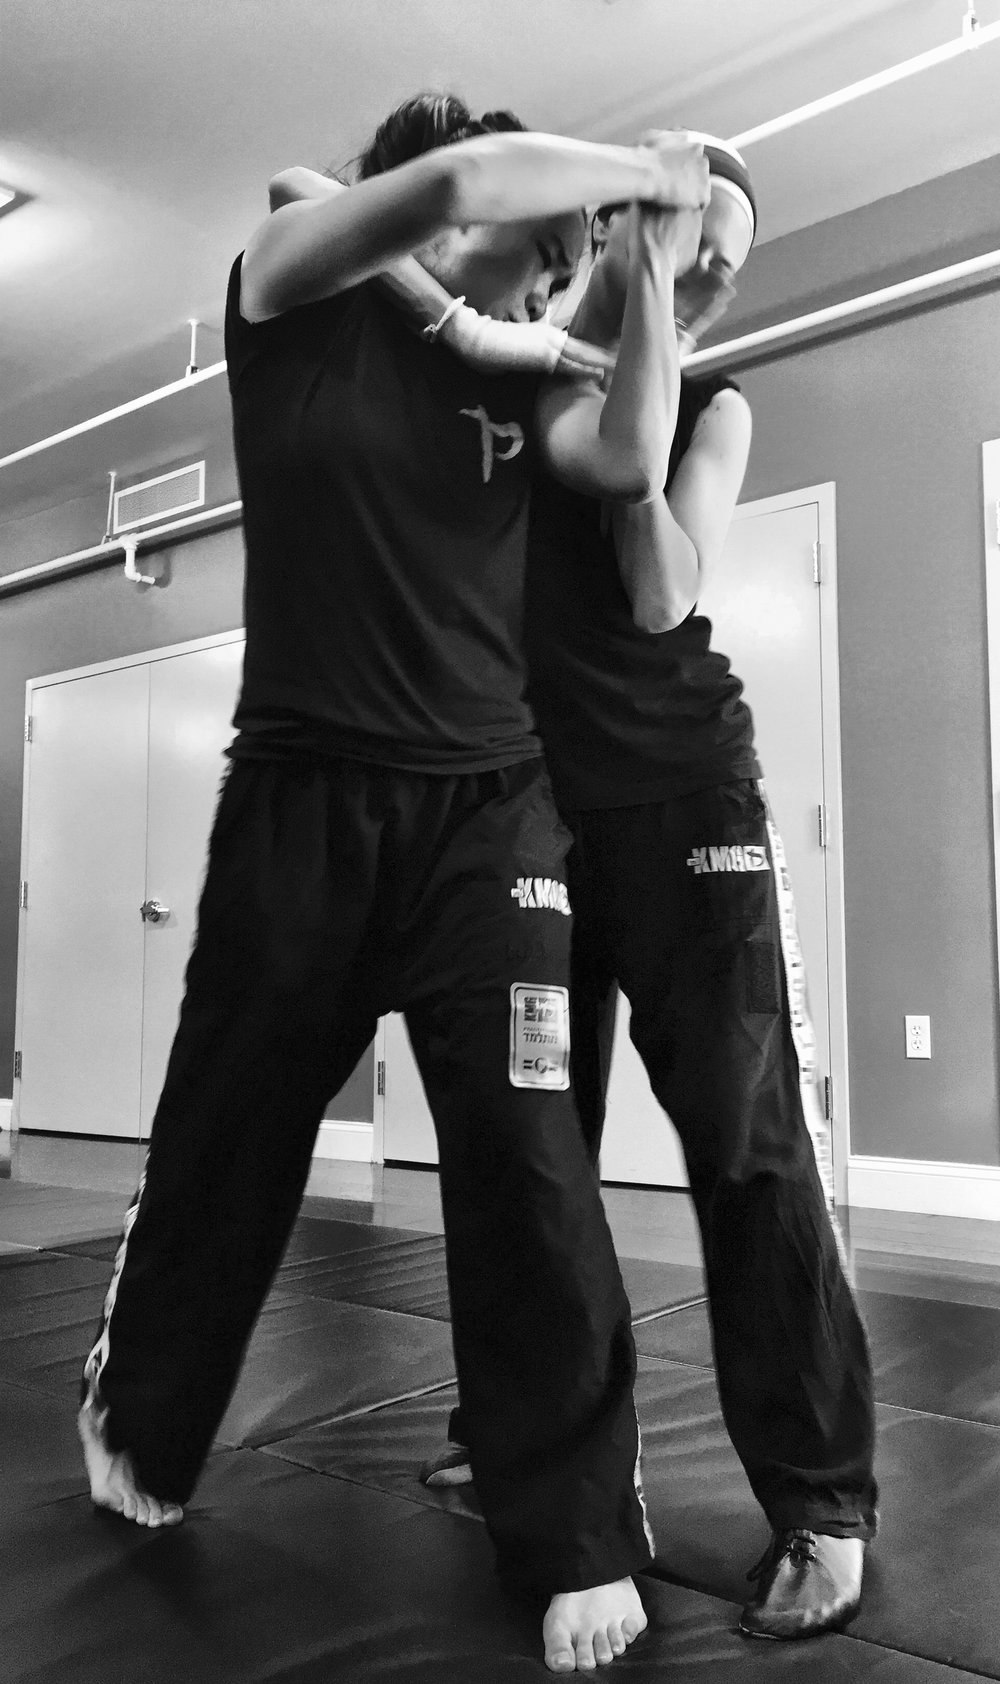 MEMBERSHIP AT PKM IS PRIVATE.   - KRAV MAGAThis membership includes an unlimited amount of self defense classes (not including weapons classes) per month. This membership begins on the first use. Each class is two hours long; we advise all students to attend the entire session. You must attend a trial class before being eligible for this membership. There is a 12-month signed agreement necessary for this membership.TIME: UNLIMITED KRAV MAGA / MONTHLY (NOT INCLUDING LIBRE FIGHTING / IMPROVISED WEAPONS TRAINING)PRICE: $200.00 PER MONTHKrav Maga + LIBRE FIGHTING / IMPROVISED WEAPONS TRAININGThis membership includes unlimited Krav Maga classes plus four Libre Fighting / Improvised Weapons skills classes per month. This membership begins on the first use. Each Libre Fighting / Improvised Weapons class is 1.5 hours long. There is a 12-month signed agreement necessary for this membership.TIME: UNLIMITED KRAVA MAGA + UNLIMITED LIBRE FIGHTING / IMPROVED WEAPONS TRAININGPRICE: $250.00 PER MONTH10 CLASS KRAV MAGA PACKAGEThis package includes 10 Krav Maga classes; each class is 2 hours long. This pass cannot be broken up into 1 hour classes. This pass must be used within 6 months of first class. Please attend the trial class before registering for this package. TIME: 2 HOURS / CLASSPRICE: $450.00You are required to attend a trial class before being eligible for membership. Trial classes are $25.00 and non-refundable.